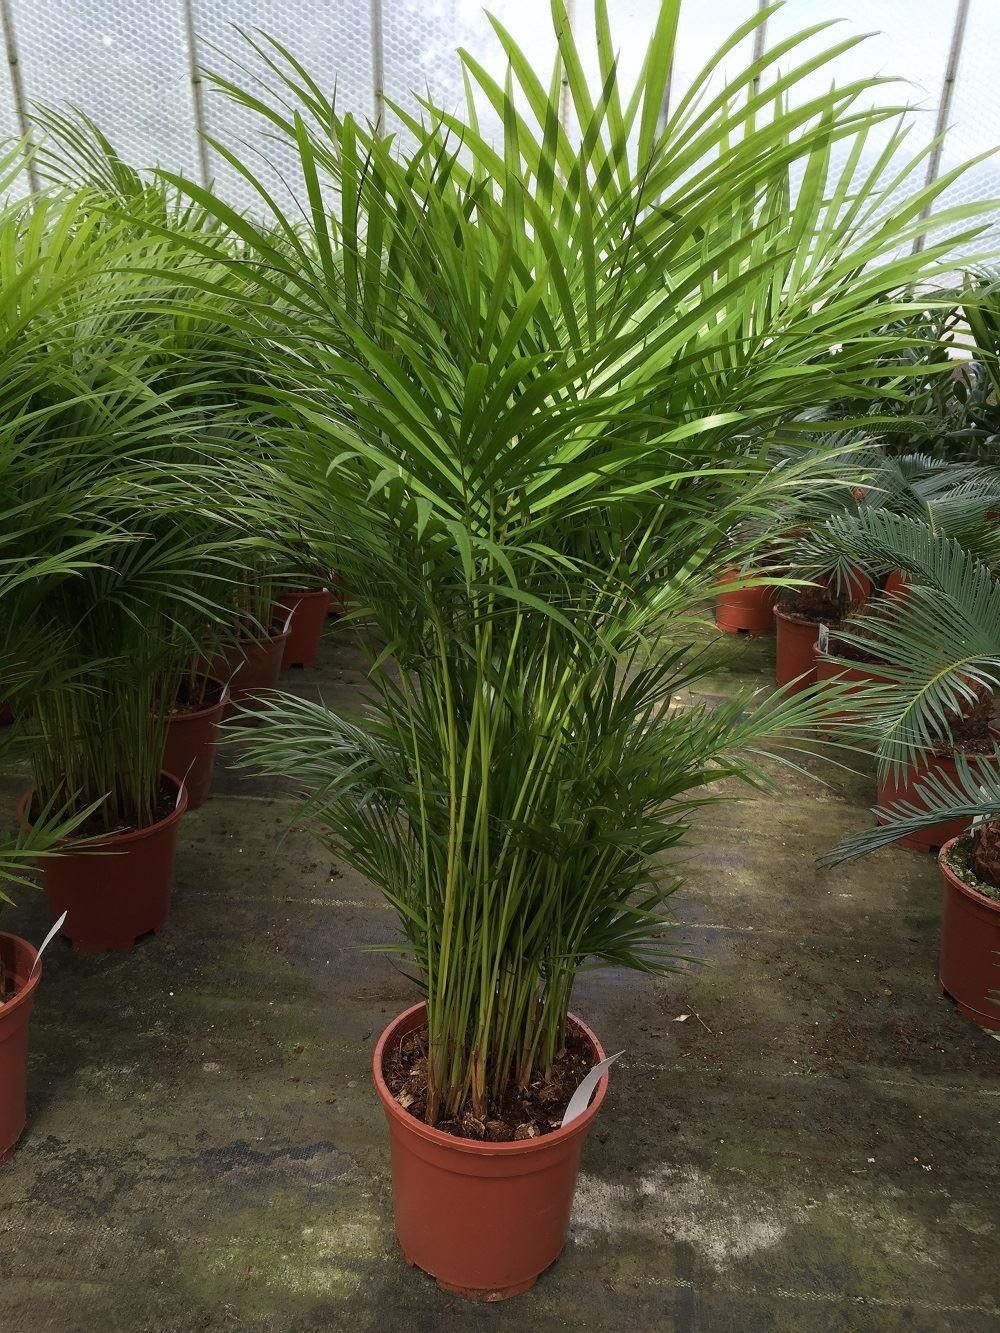 Chrysalidocarpus Space For Life Chrysalidocarpus Lutescens Areca Palm House Plant In 19cm Pot